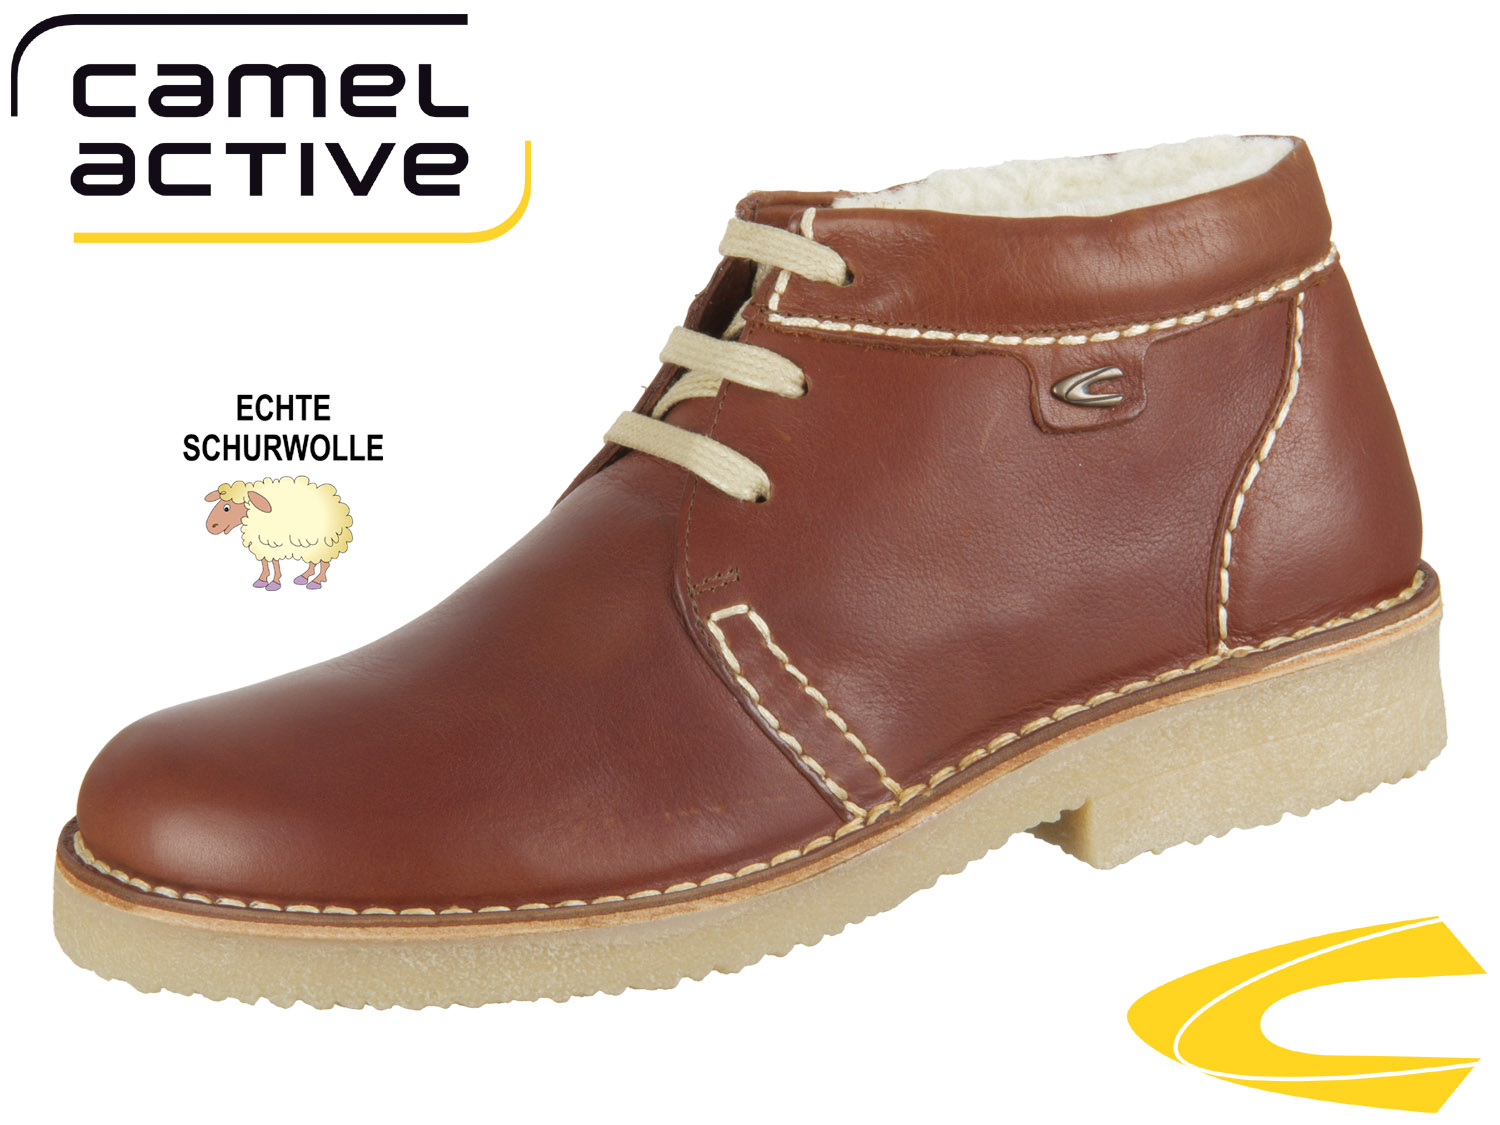 Classic Stiefel camel active camel active Stiefeletten